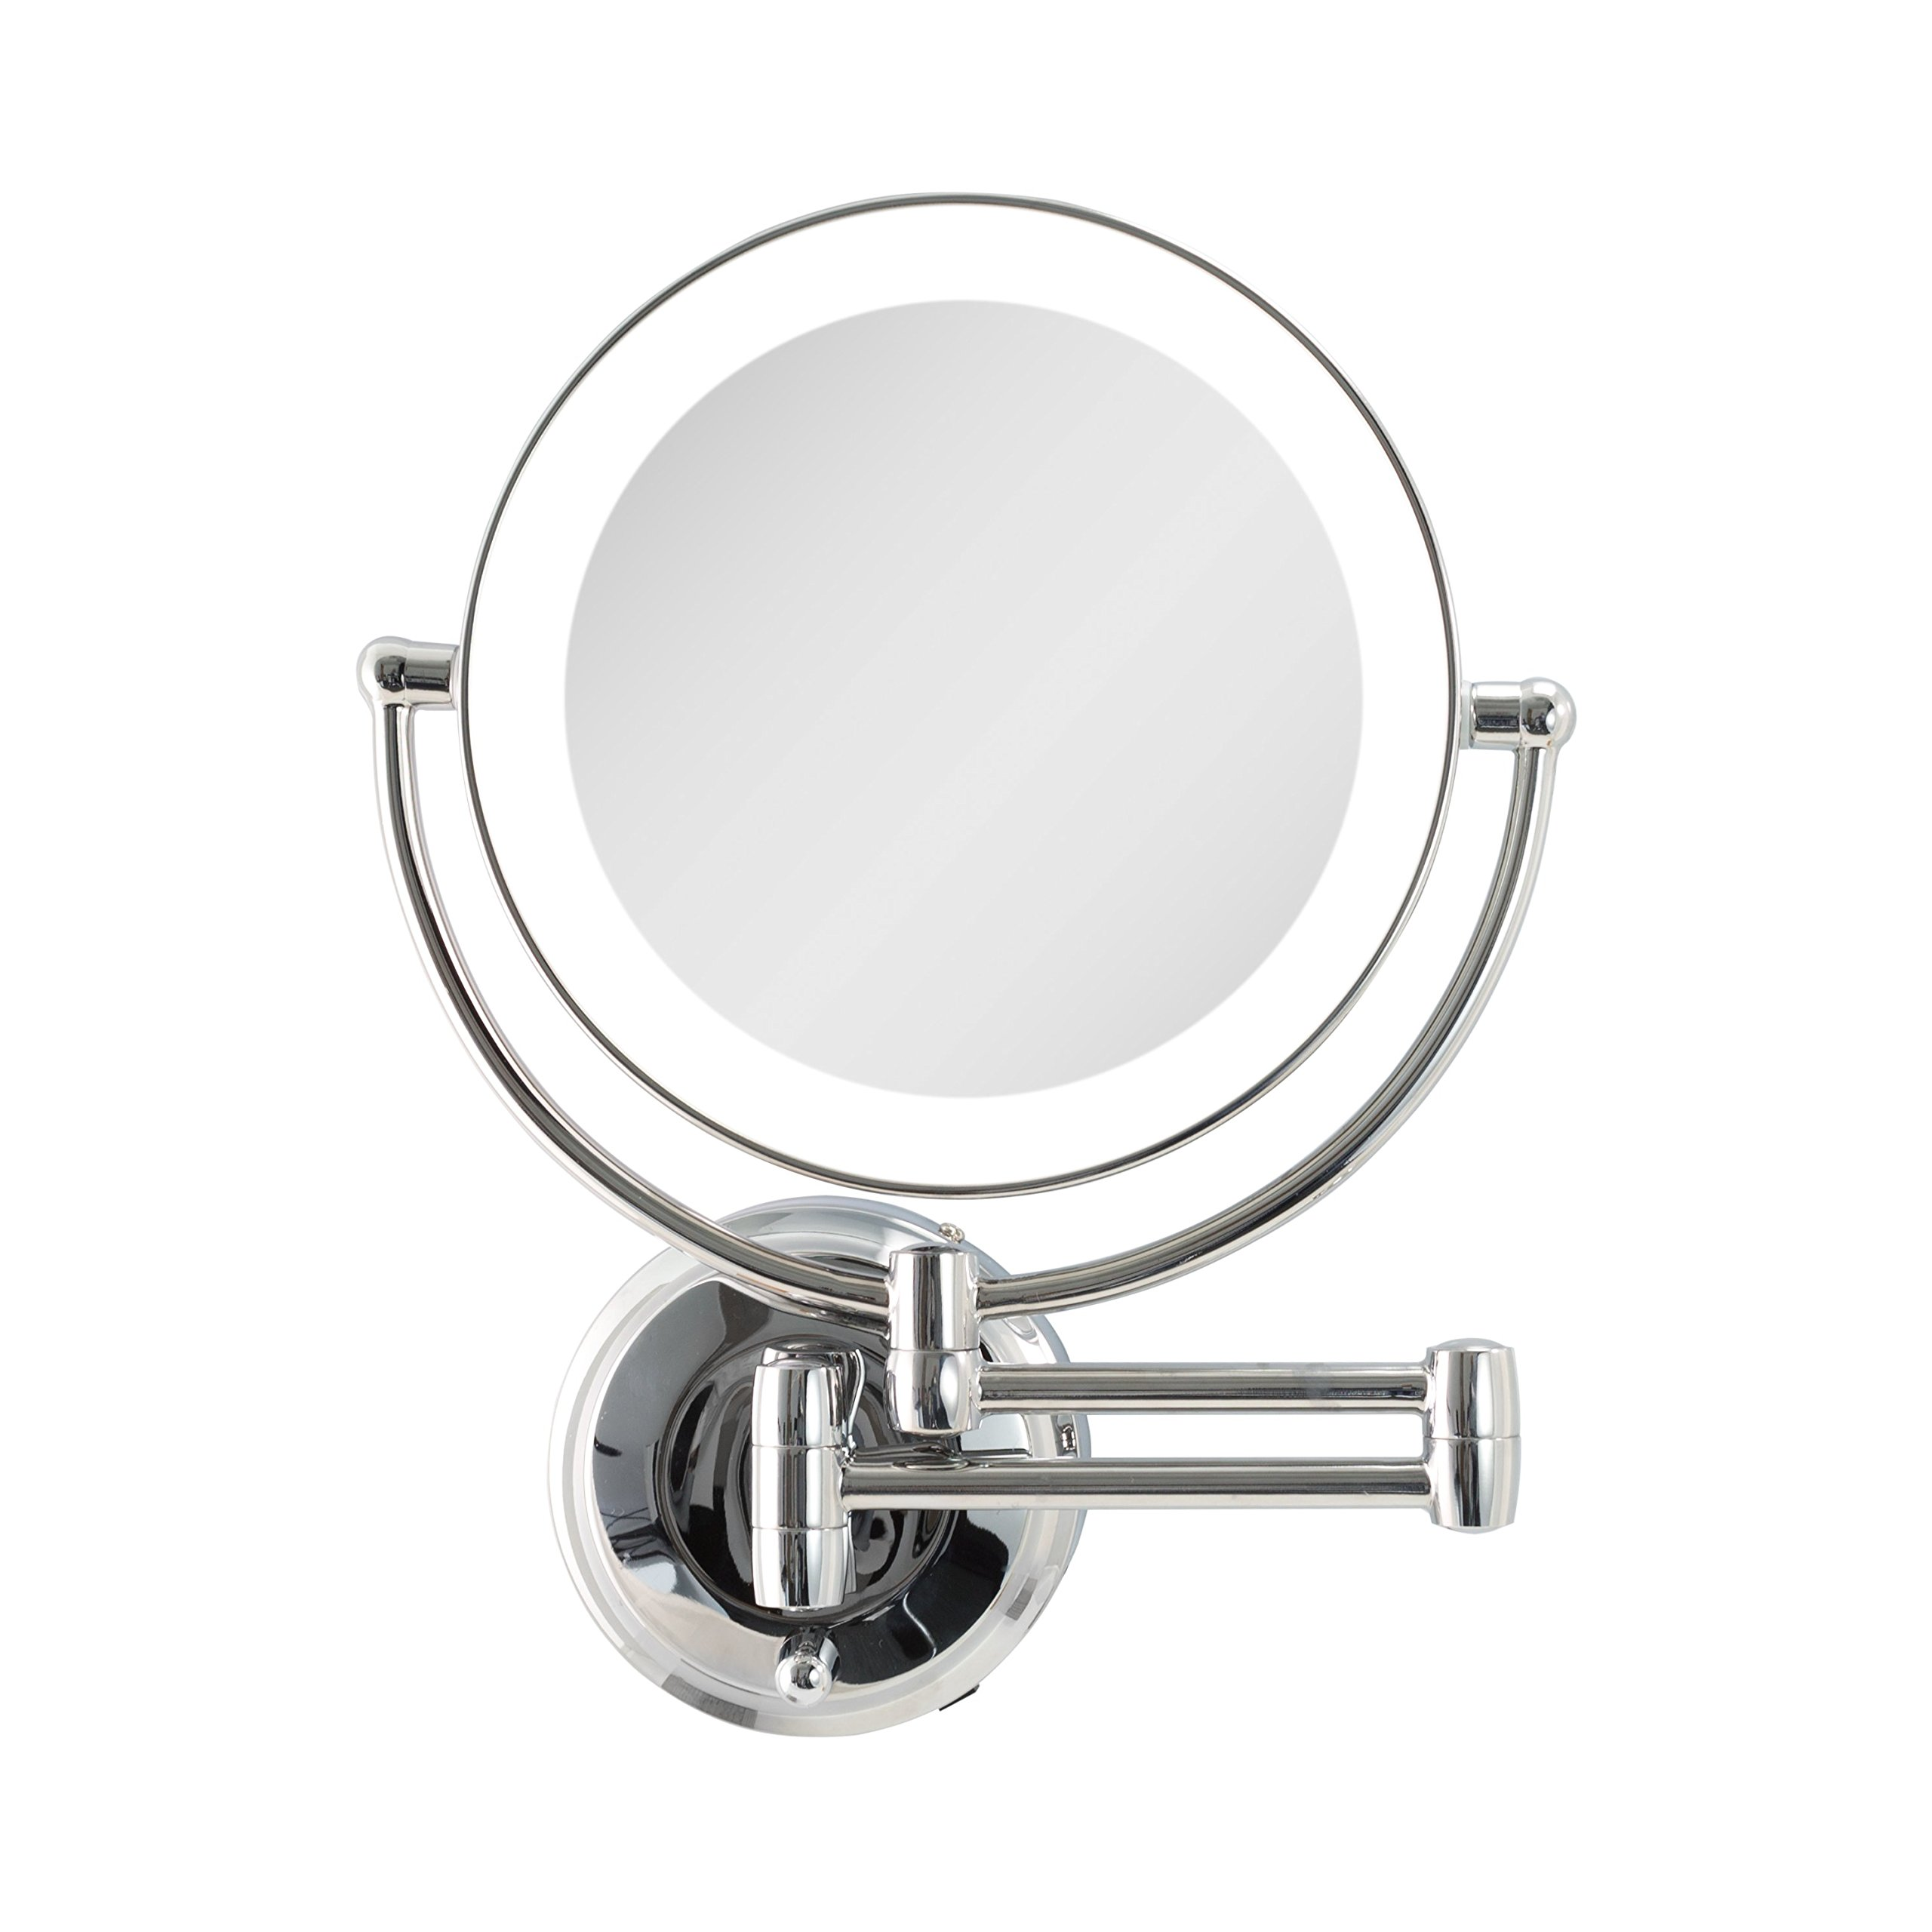 Cheap Zadro Led Lighted Wall Mount Mirror Find Zadro Led Lighted